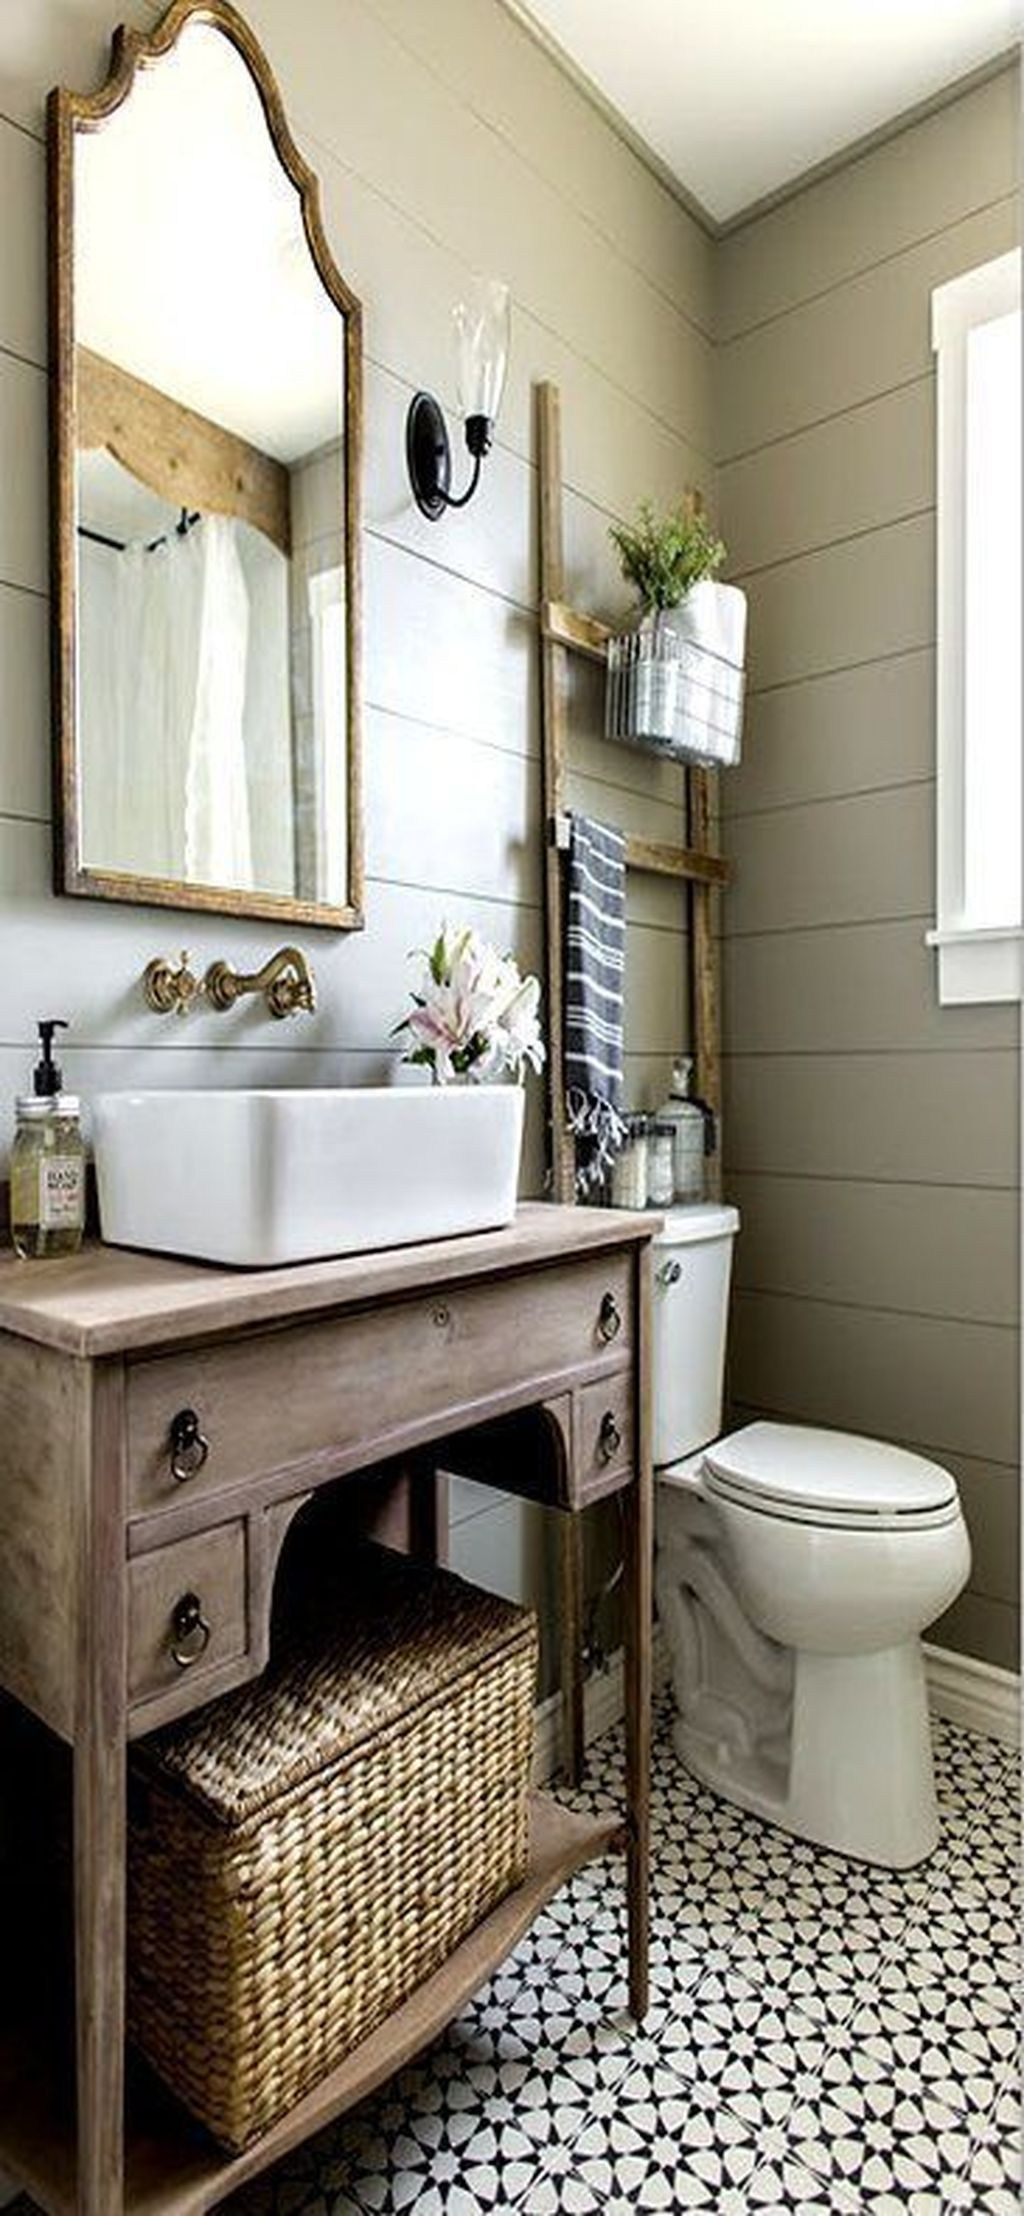 Captivating Handmade Bathroom Organization Ideas 08